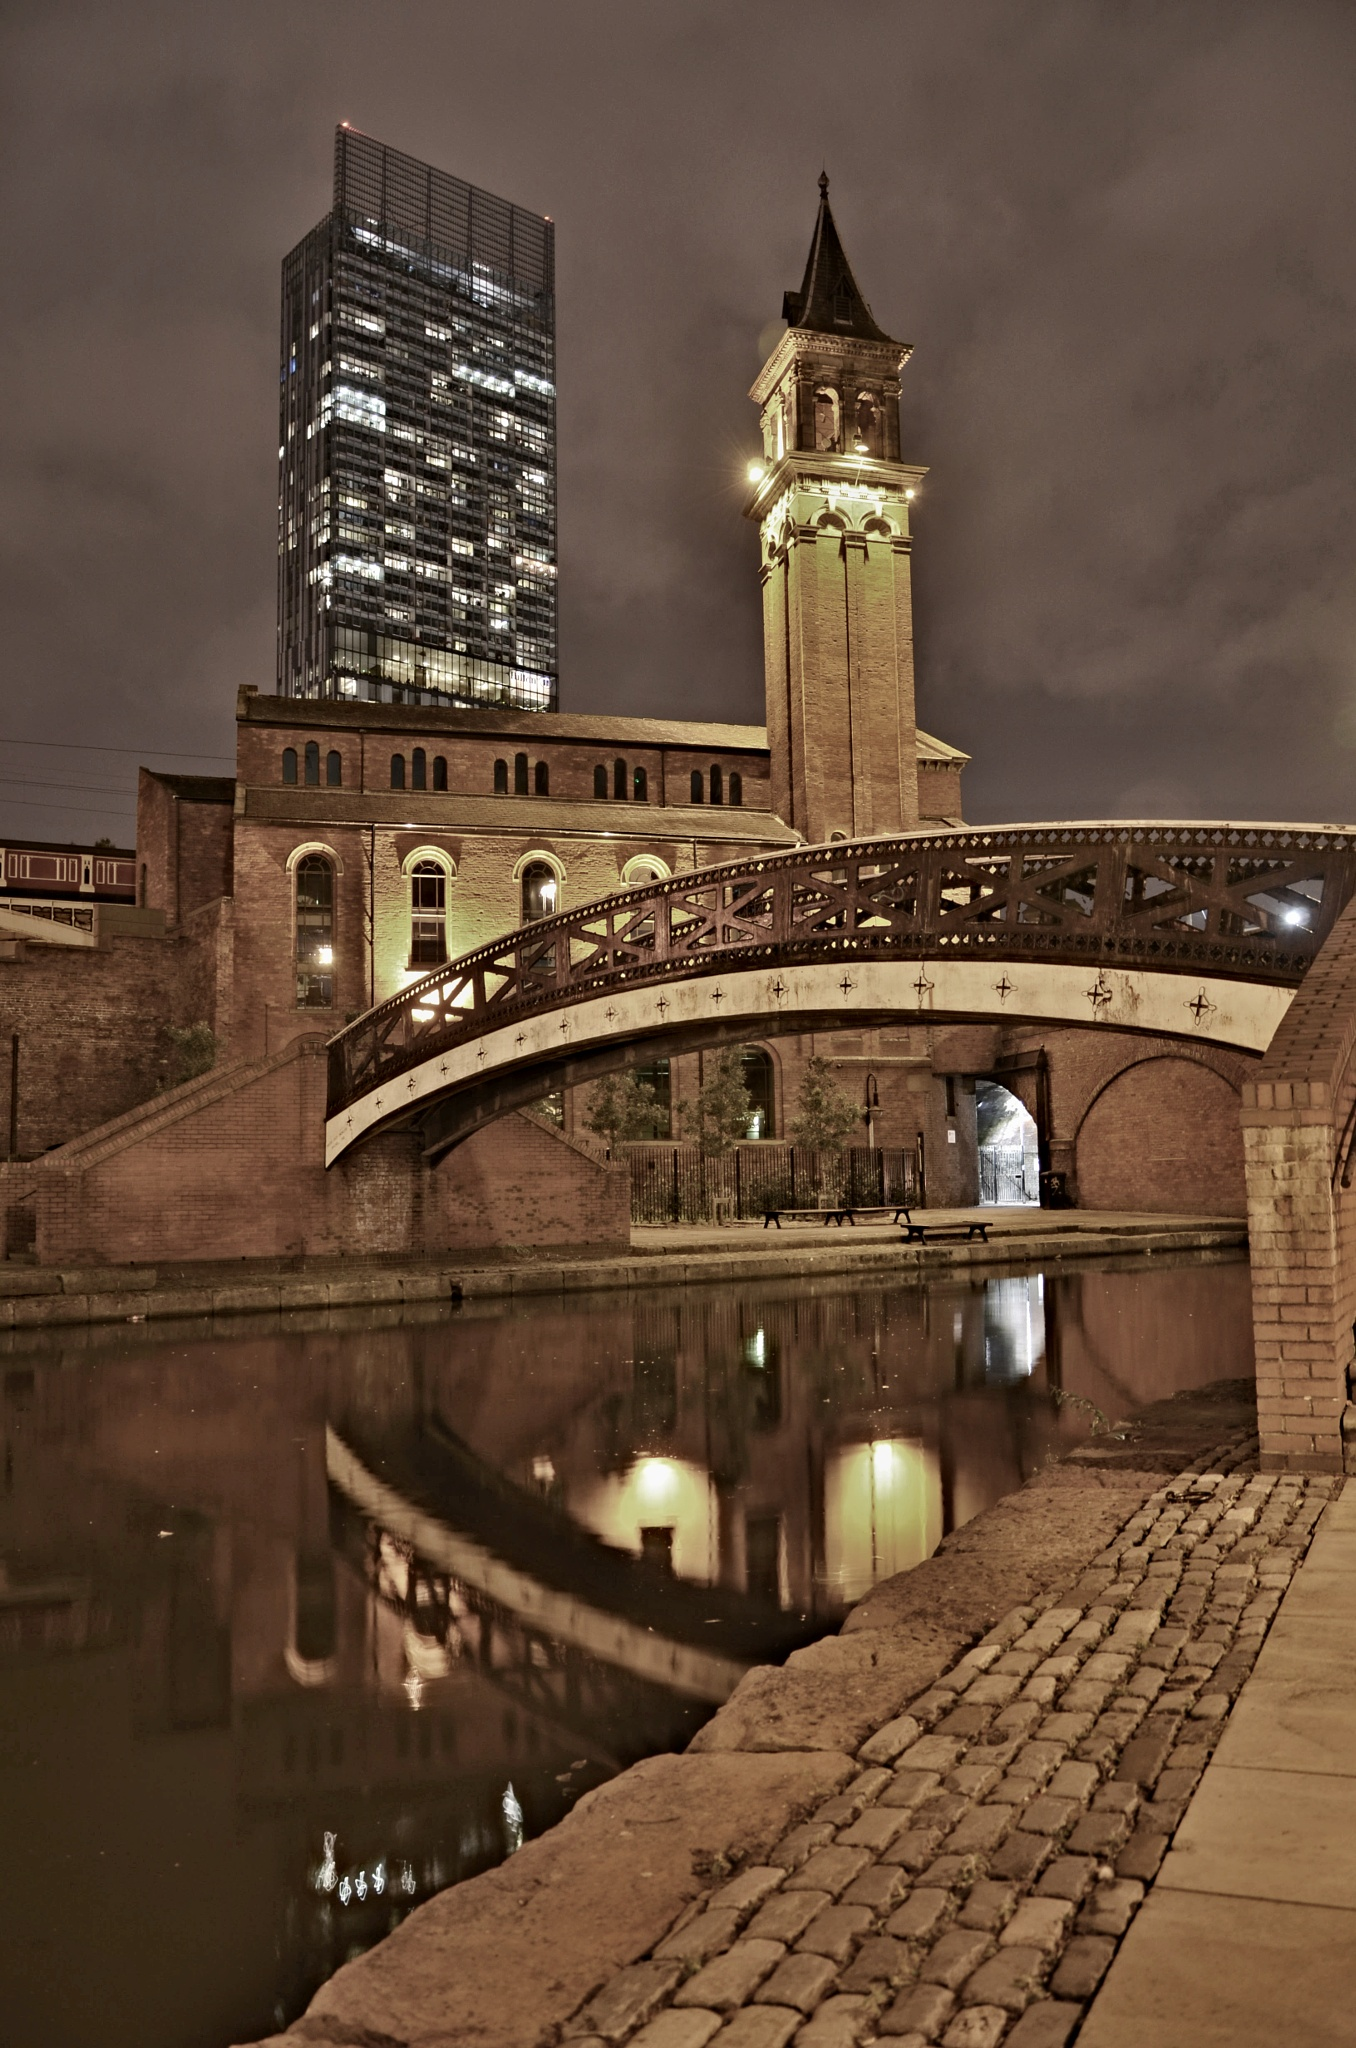 manchester waterways by night by pwol